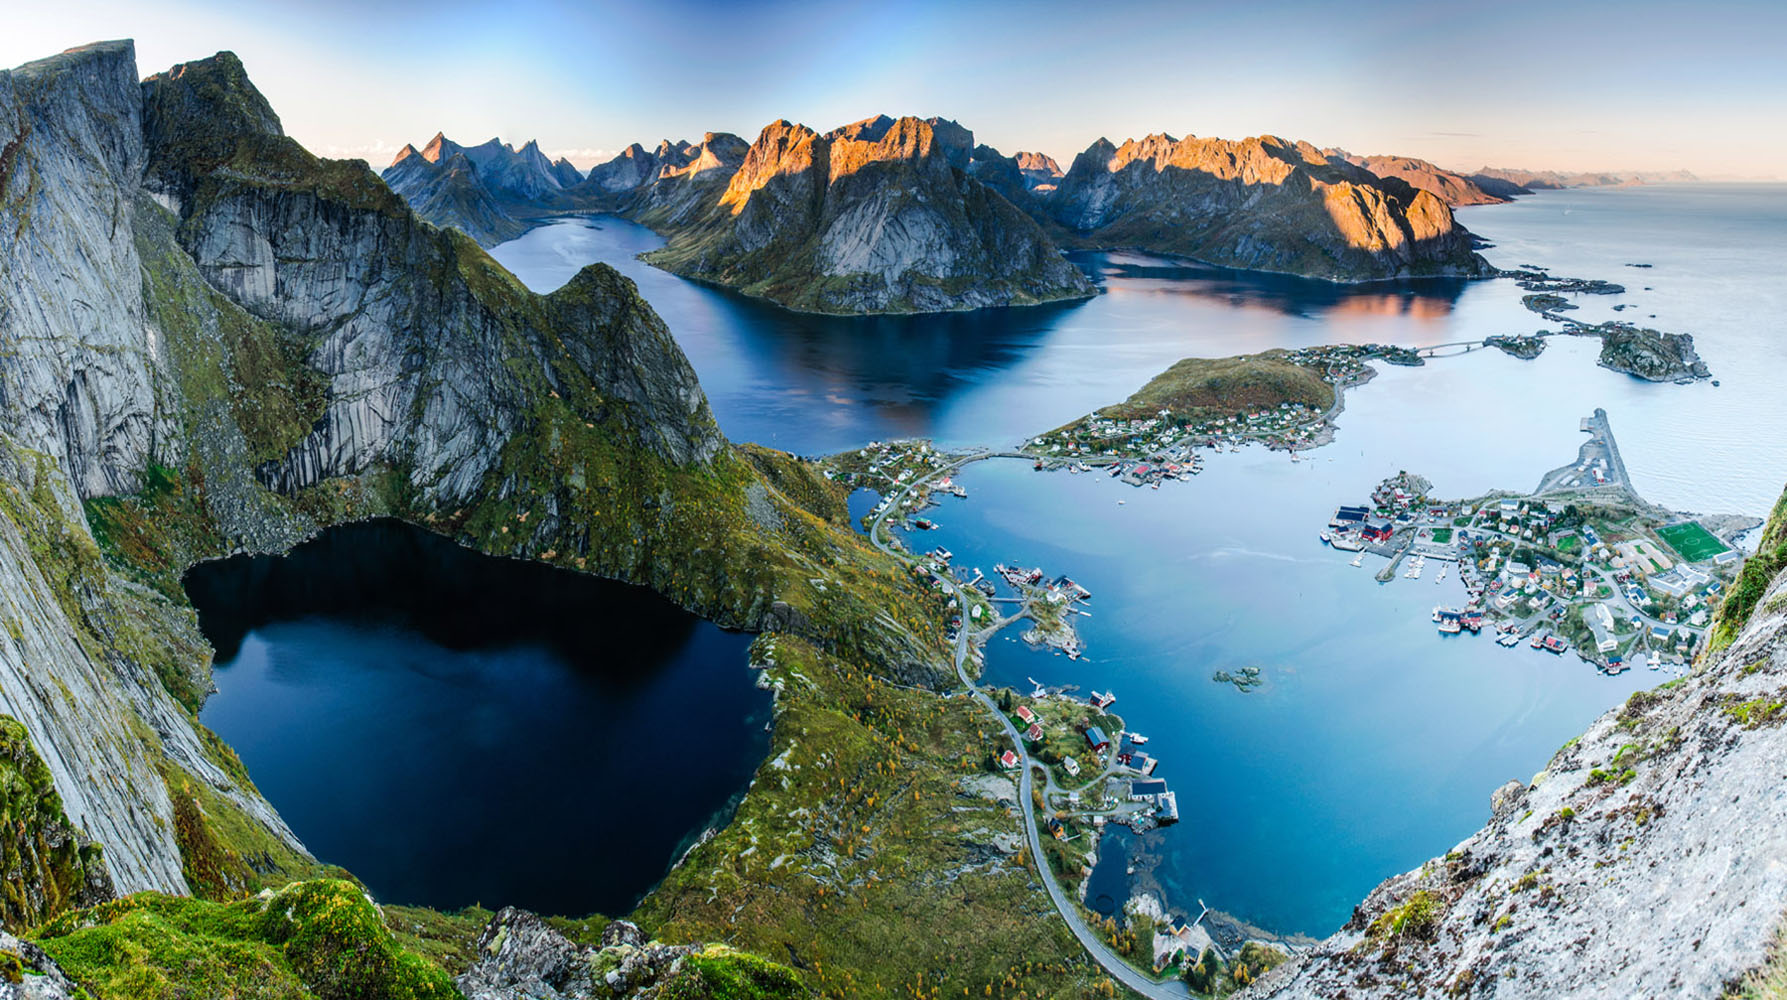 An overhead shot of mountains and lakes in the Norwegian Fjords.